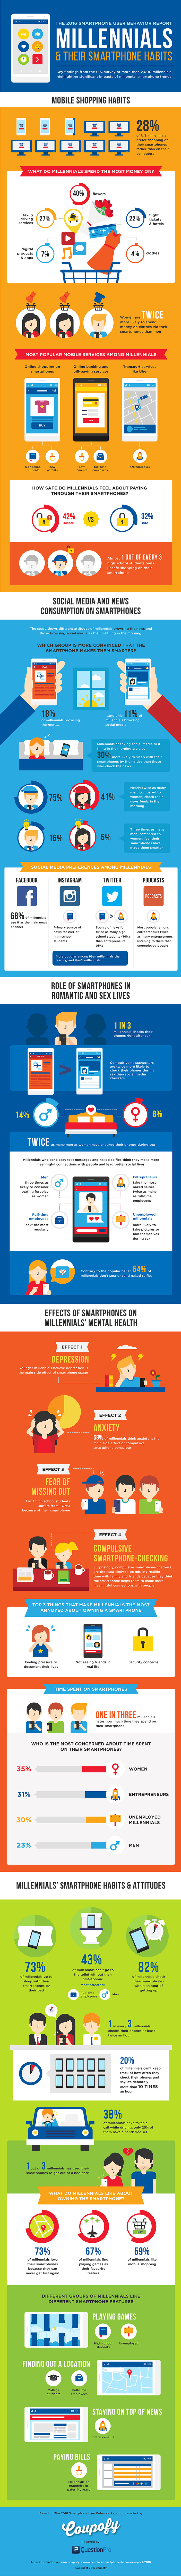 Key findings of millennial smartphone user behaviour study